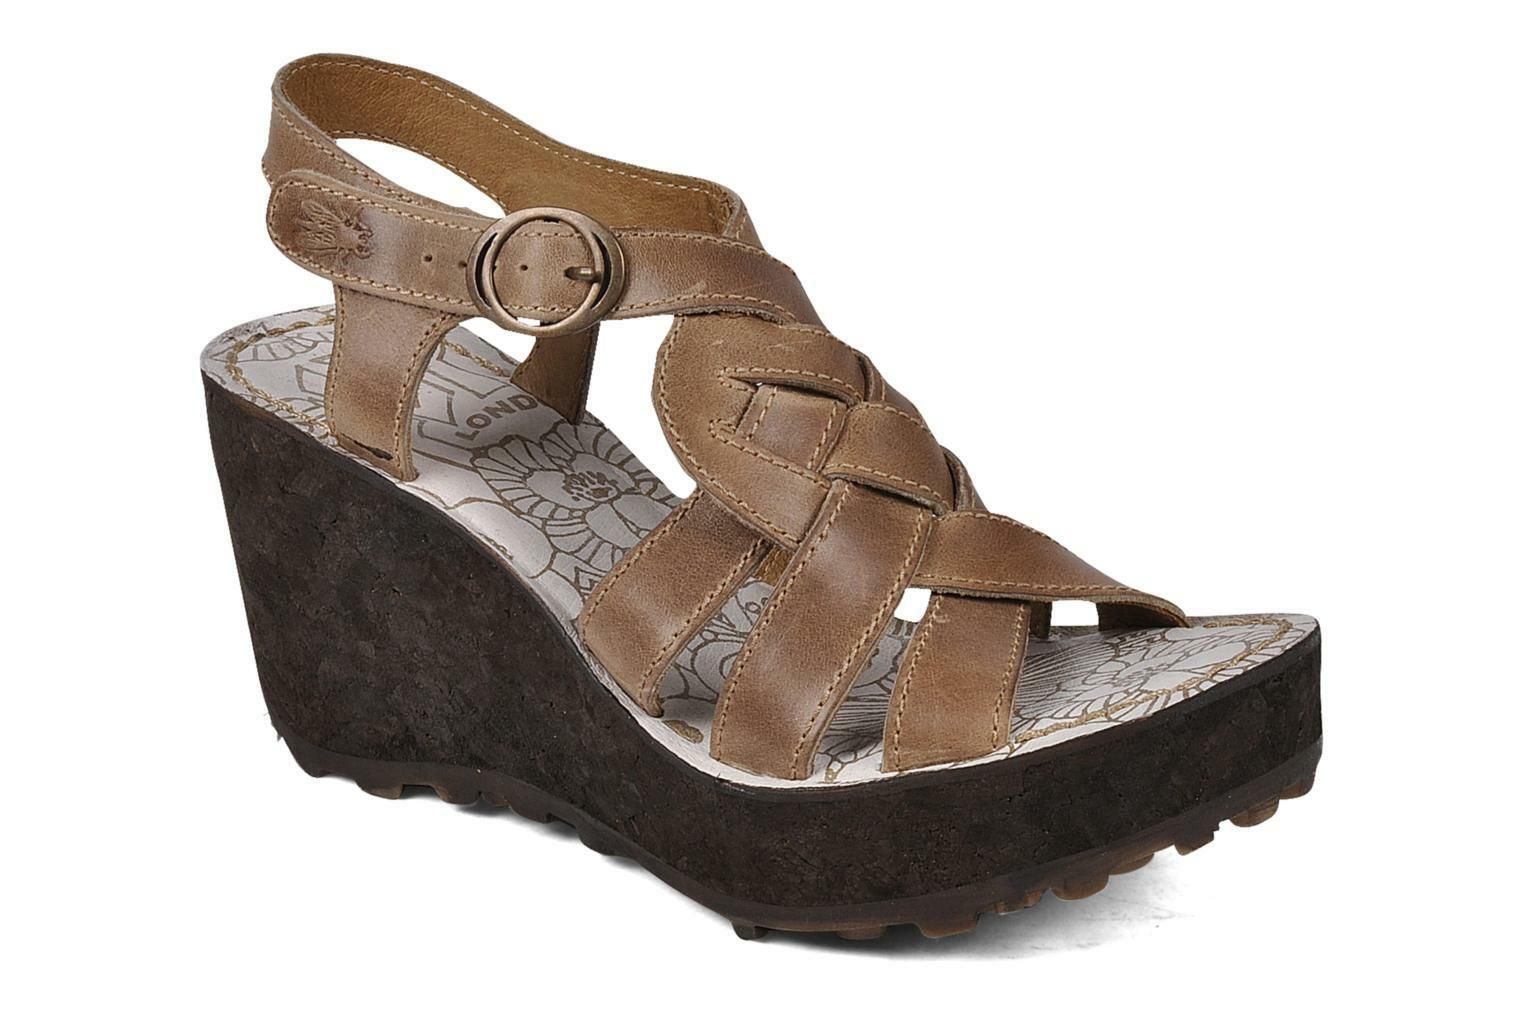 FLY LONDON GRIN DESIGNER BROWN LEATHER PLATFORM WEDGE SANDALS UK 6 EU 39